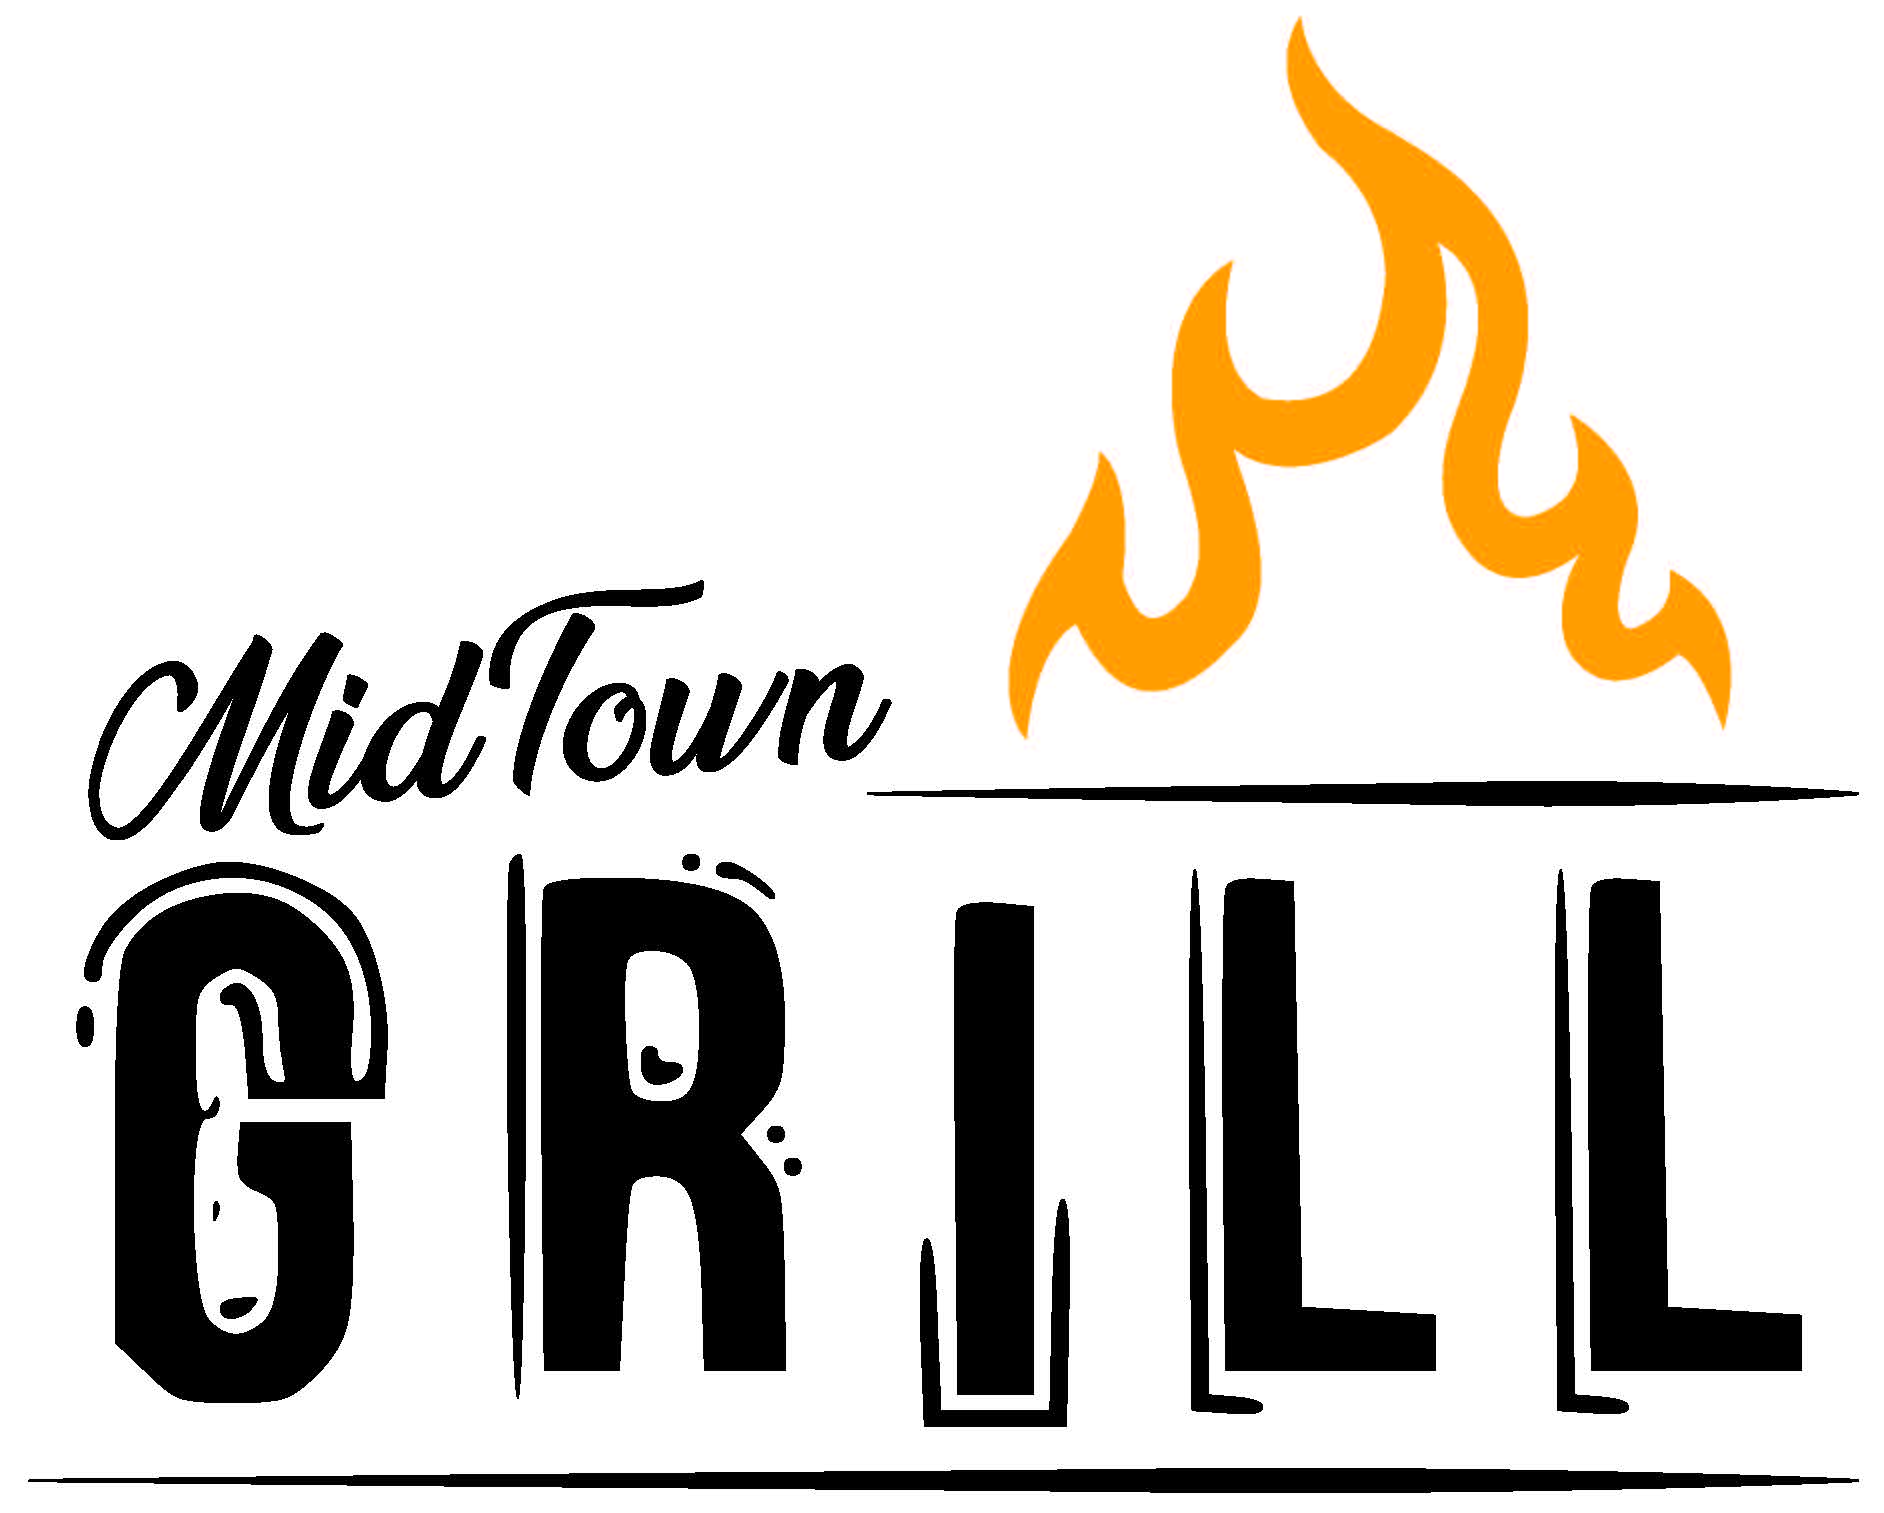 Midtwon Grill